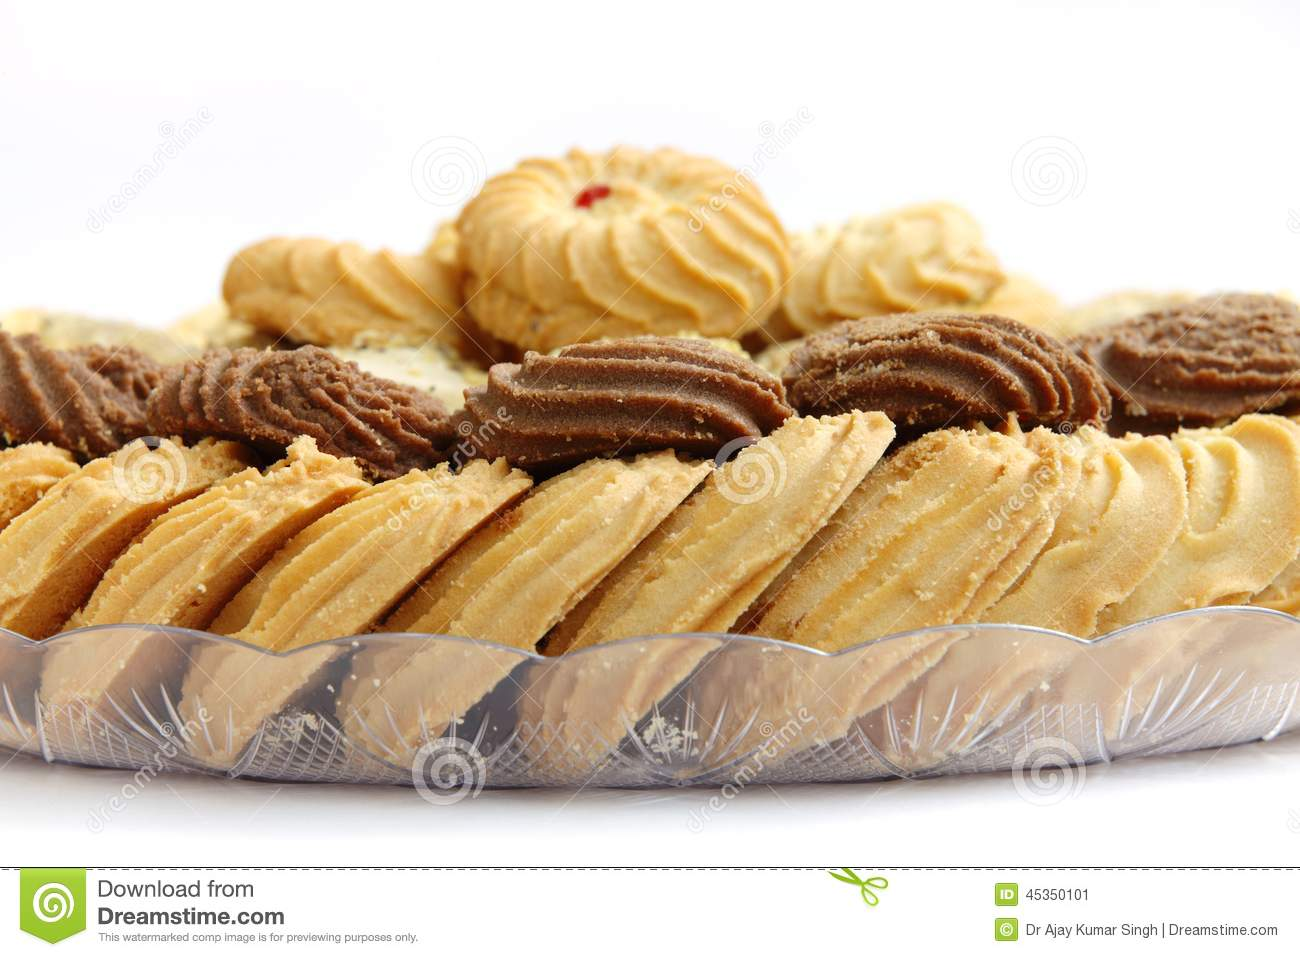 Biscuits de Delcious et biscuits, foyer sur des biscuits de cacao